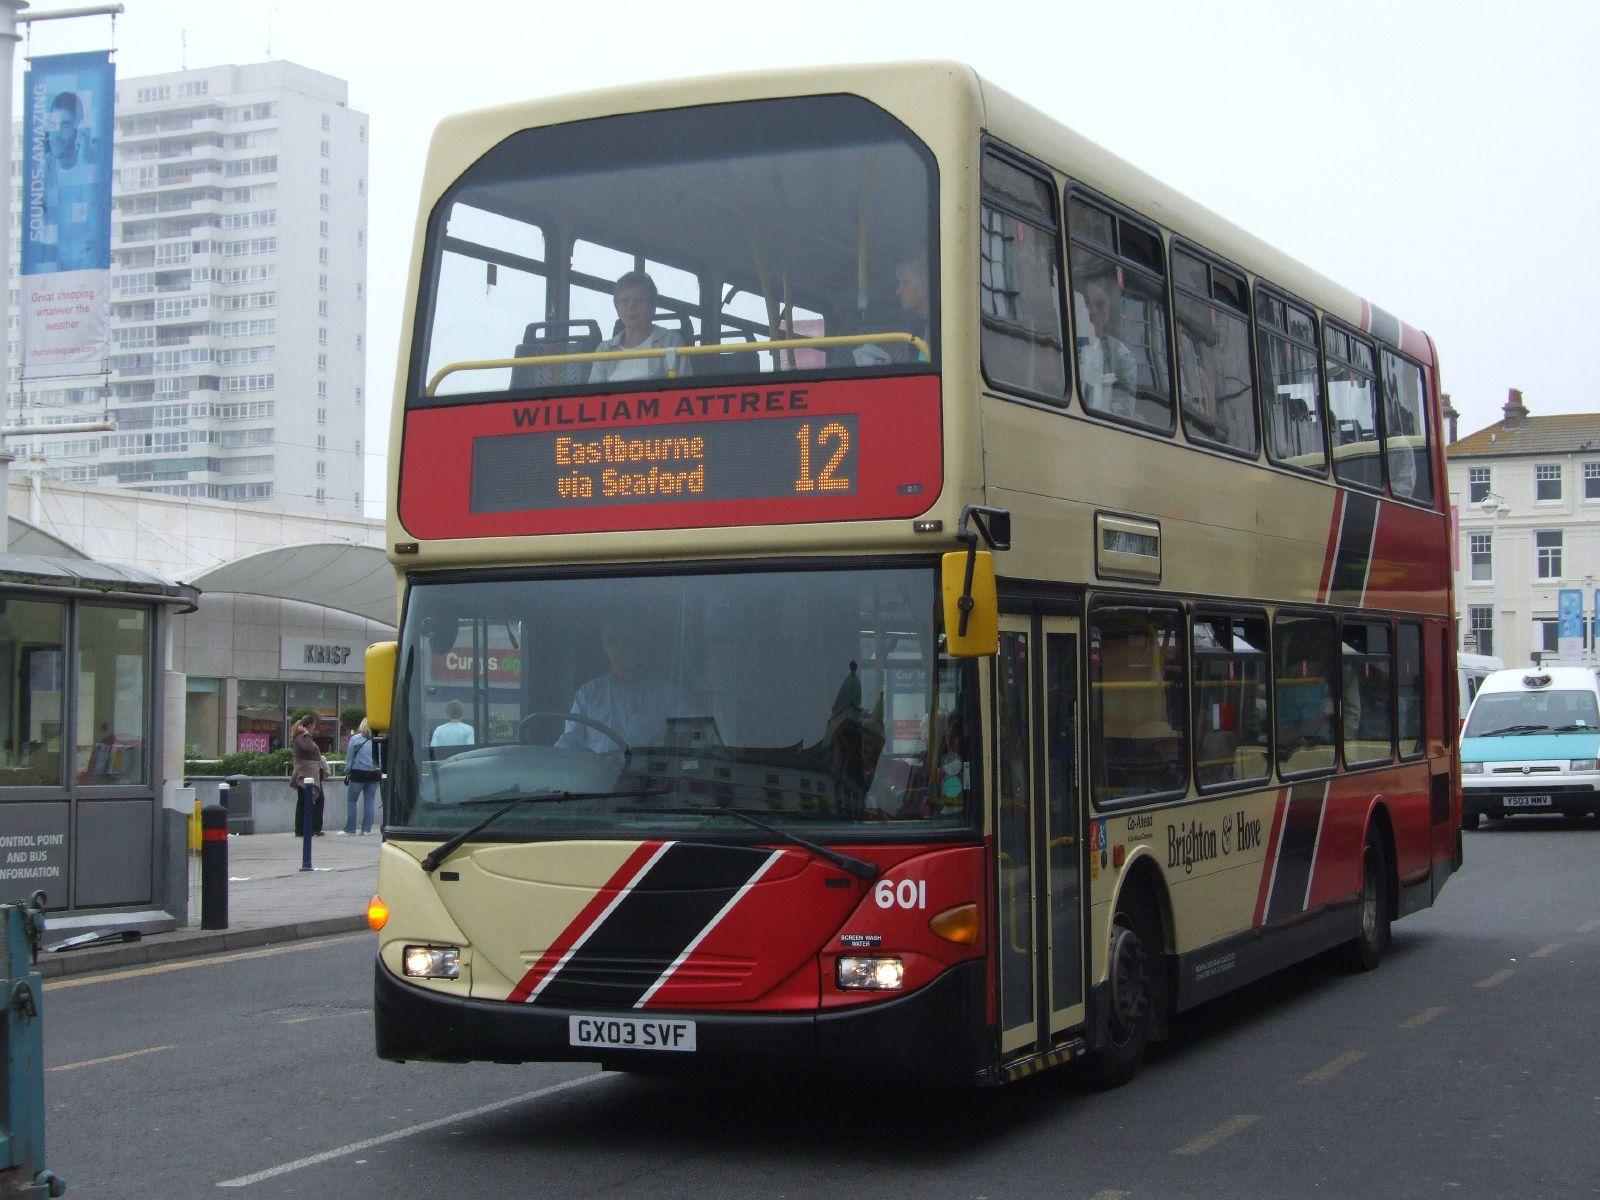 File:Brighton and Hove Buses bus GX03 SVF.jpg - Wikimedia Commons